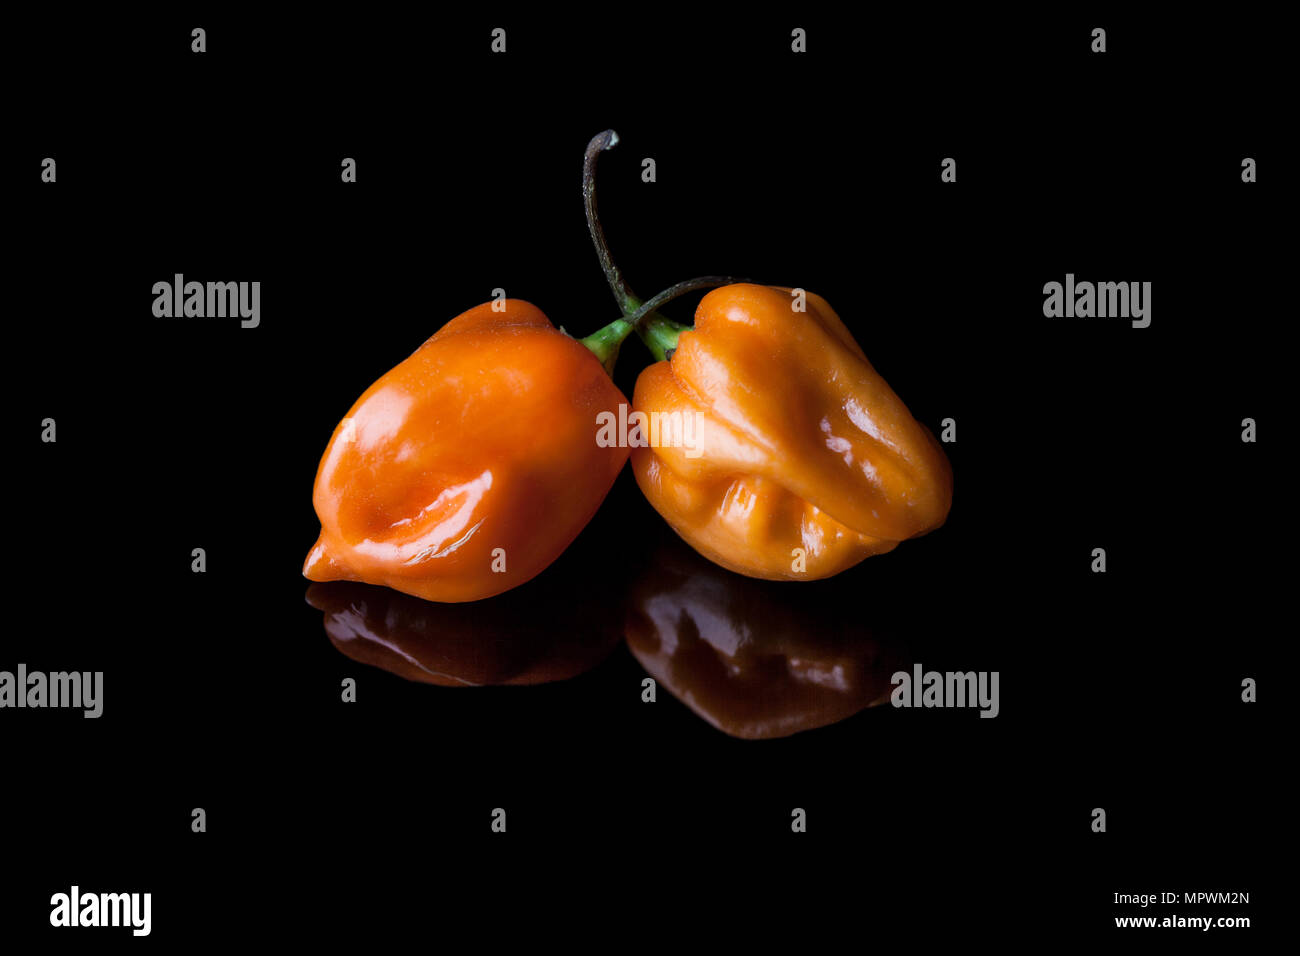 Two yellow hot habanero peppers on black background with reflection Stock Photo